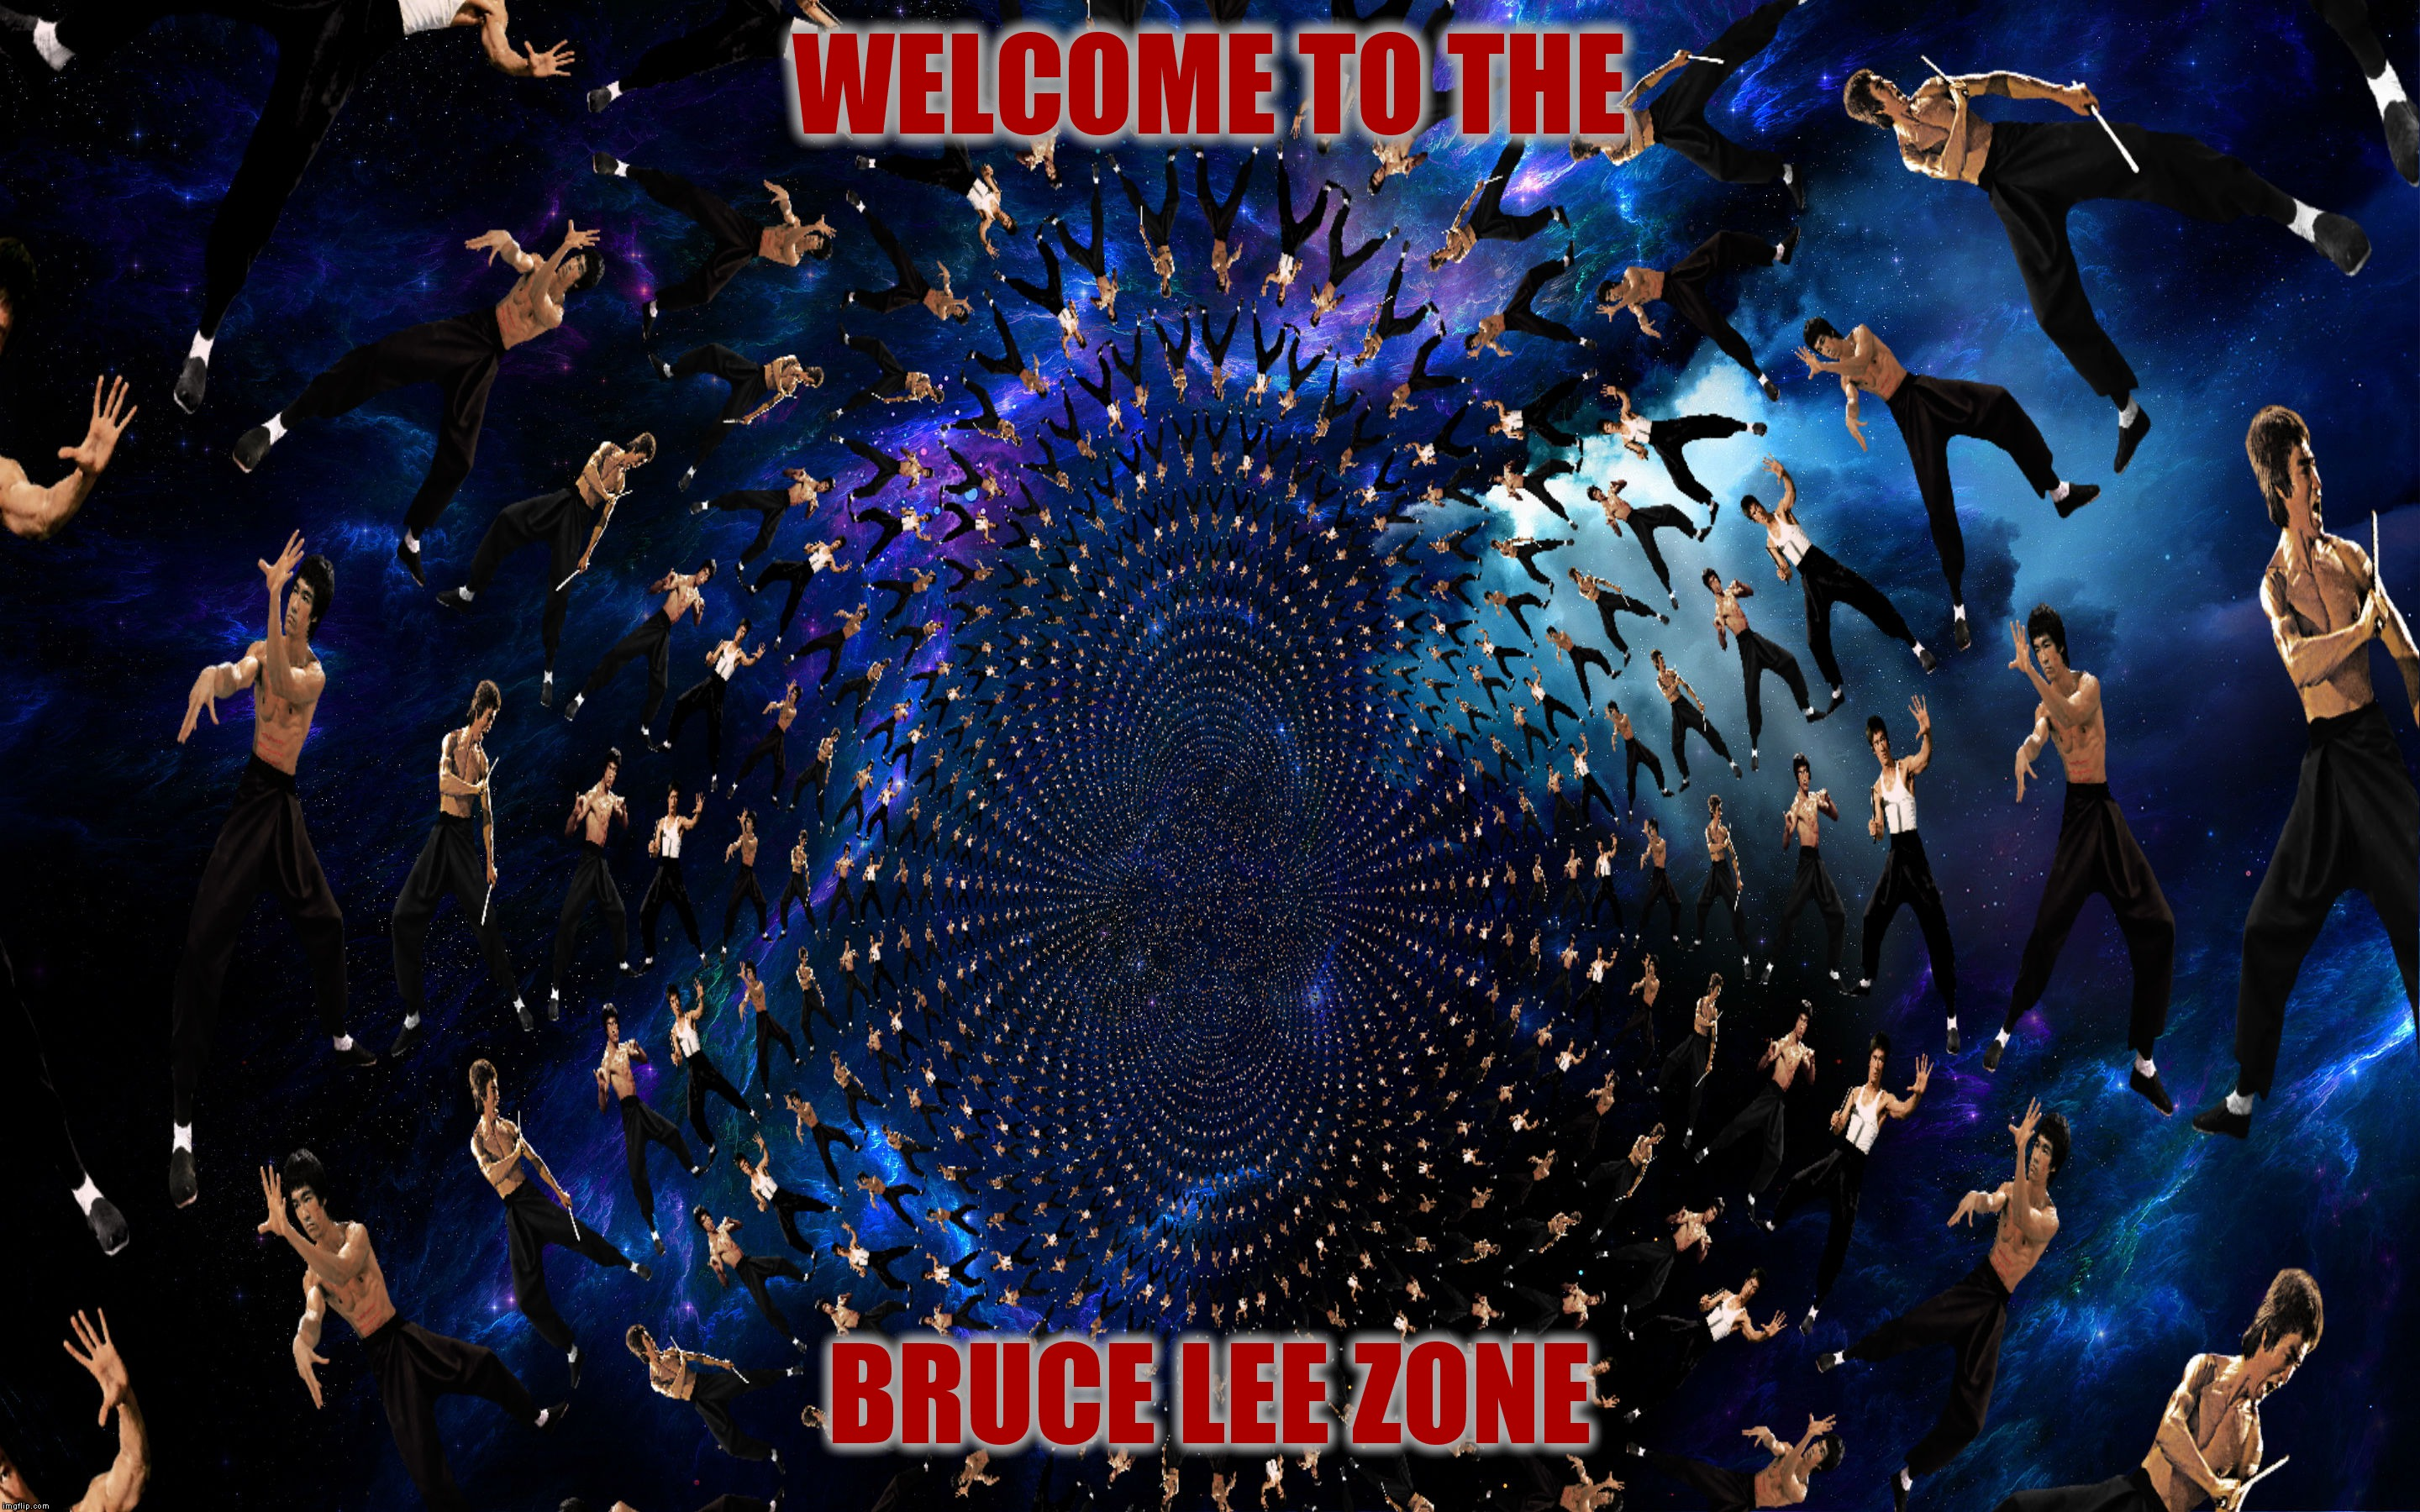 Ut Oh! Looks like Raydog's Chuck Norris memes have awoken the Dragon! | WELCOME TO THE BRUCE LEE ZONE | image tagged in bruce lee,chuck norris,death battle,raydog,jying,memestrocity | made w/ Imgflip meme maker